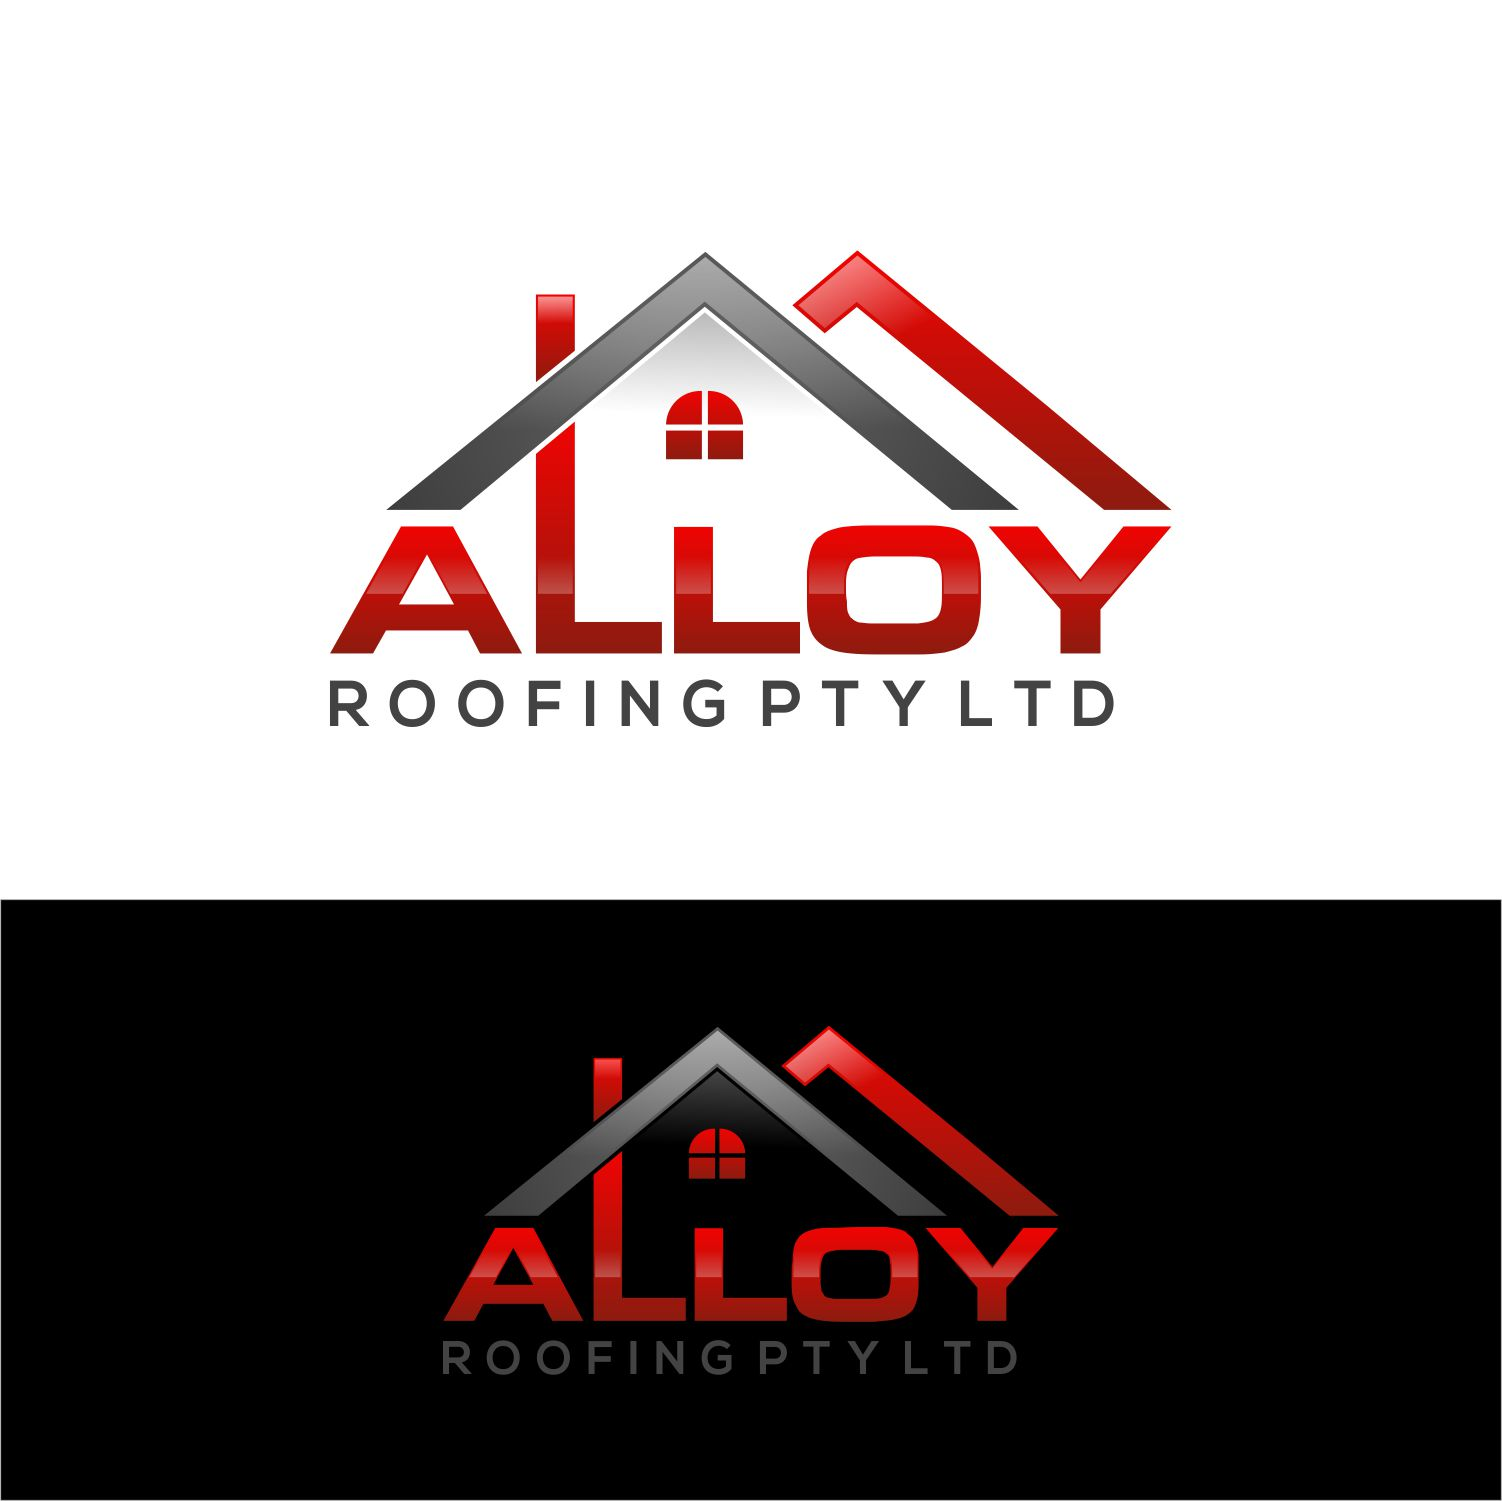 Bold Conservative Logo Design For Alloy Roofing Pty Ltd